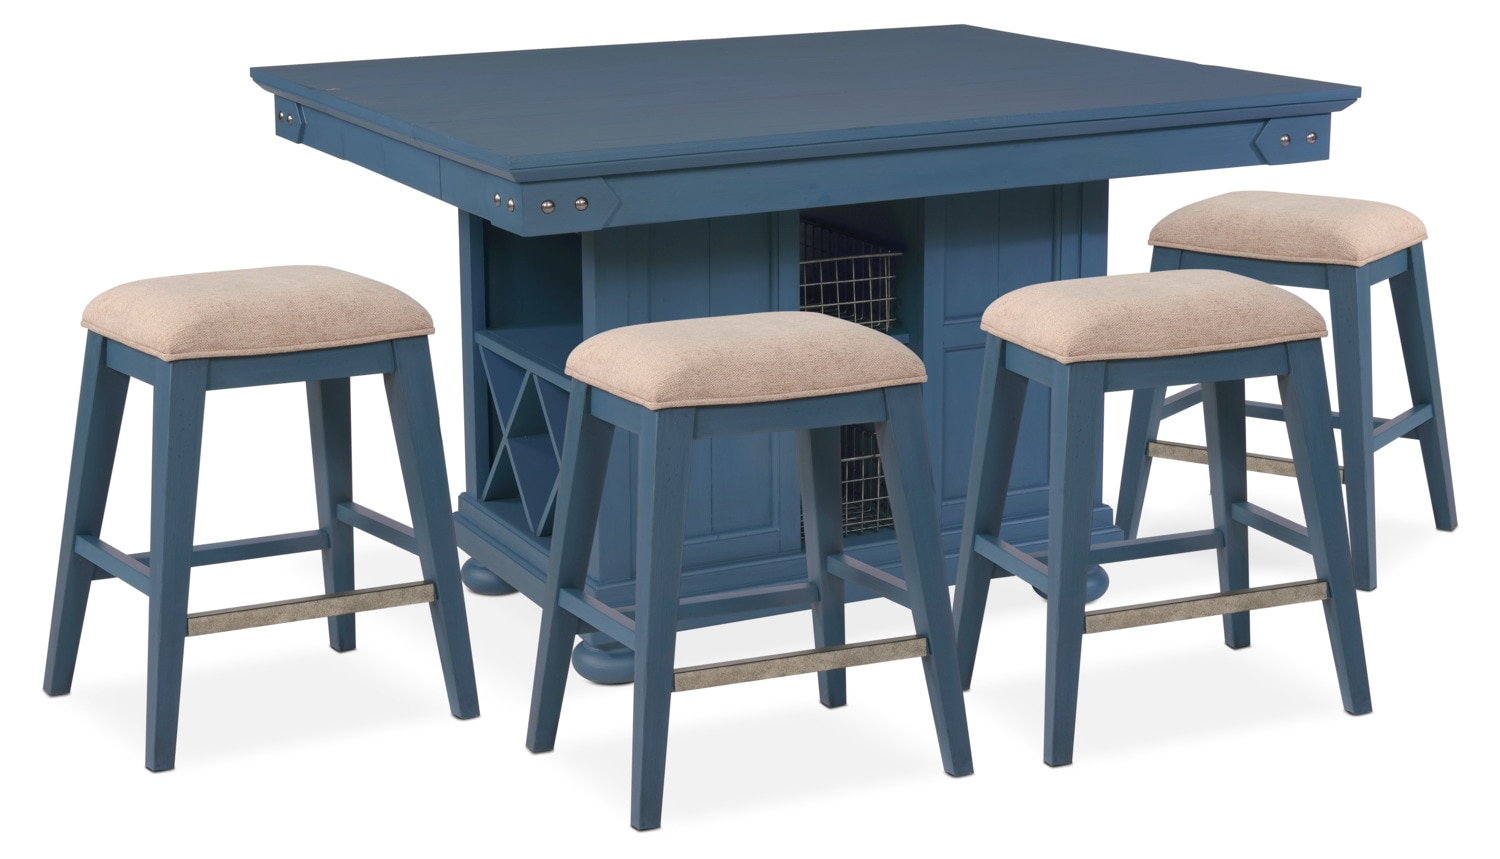 counter height chairs for kitchen island new haven counter height kitchen island and 4 backless stools blue american signature furniture 6414